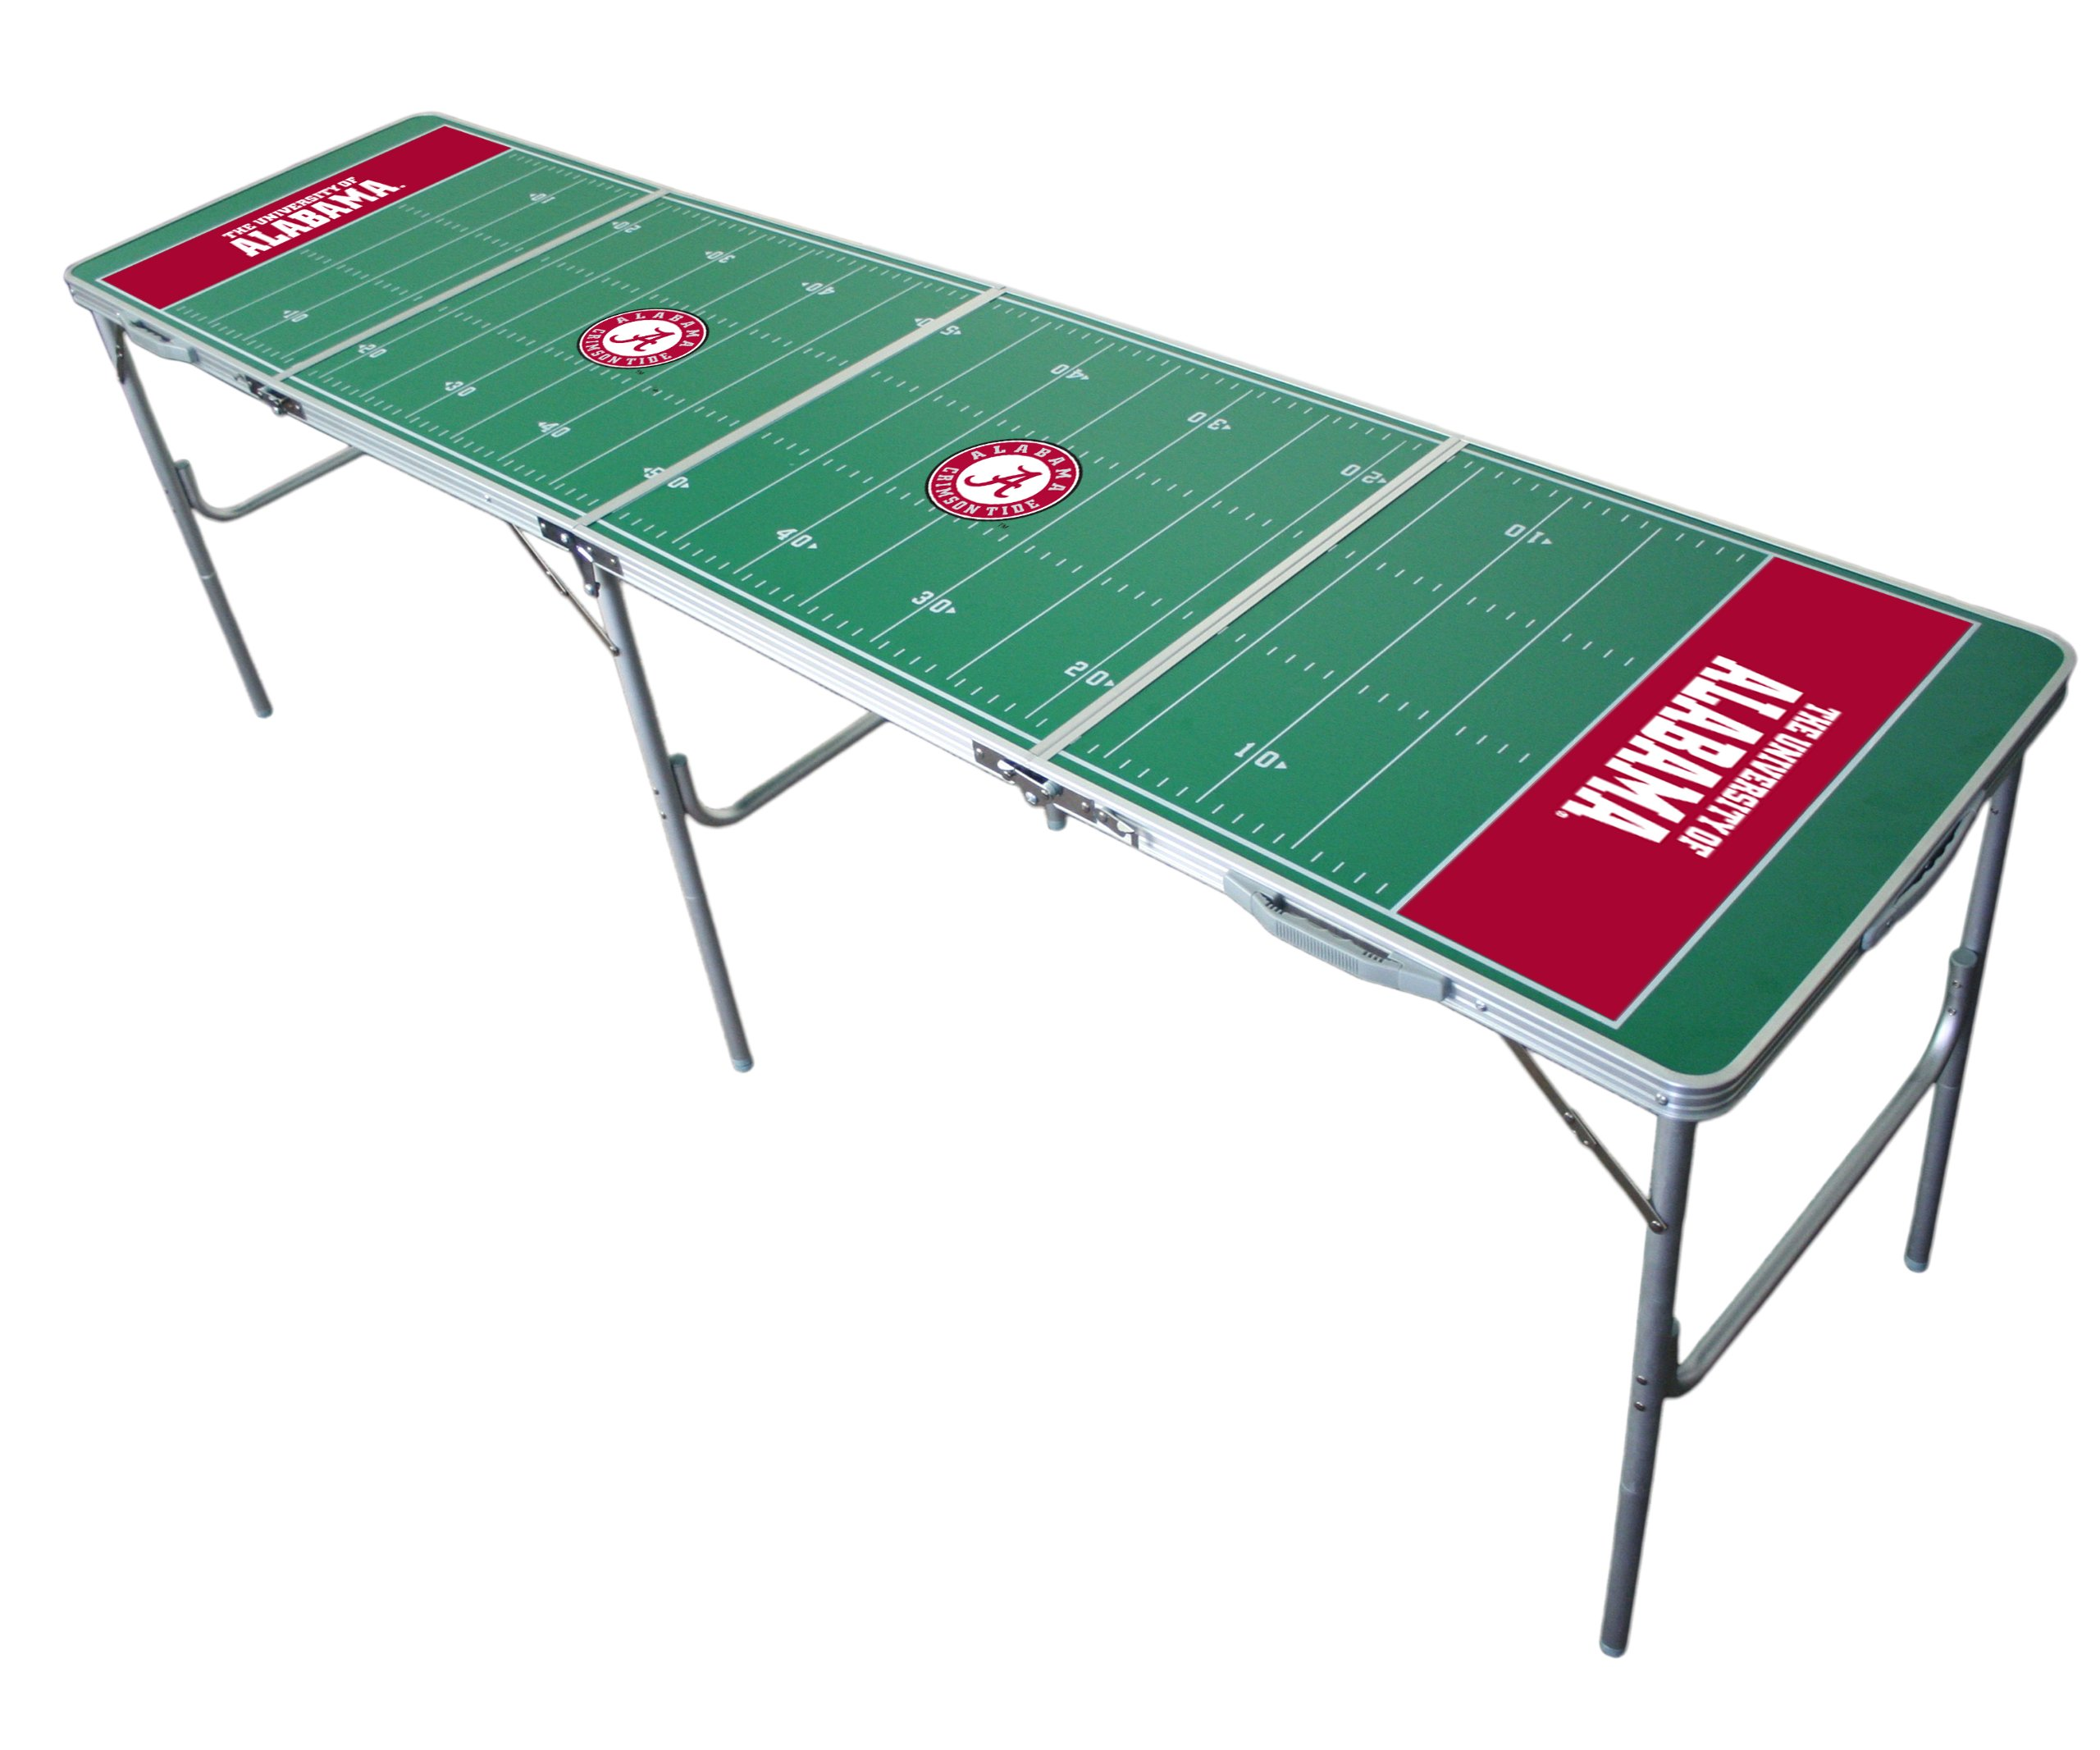 Alabama Crimson Tide 2x8 Tailgate Table by Wild Sports by Wild Sports